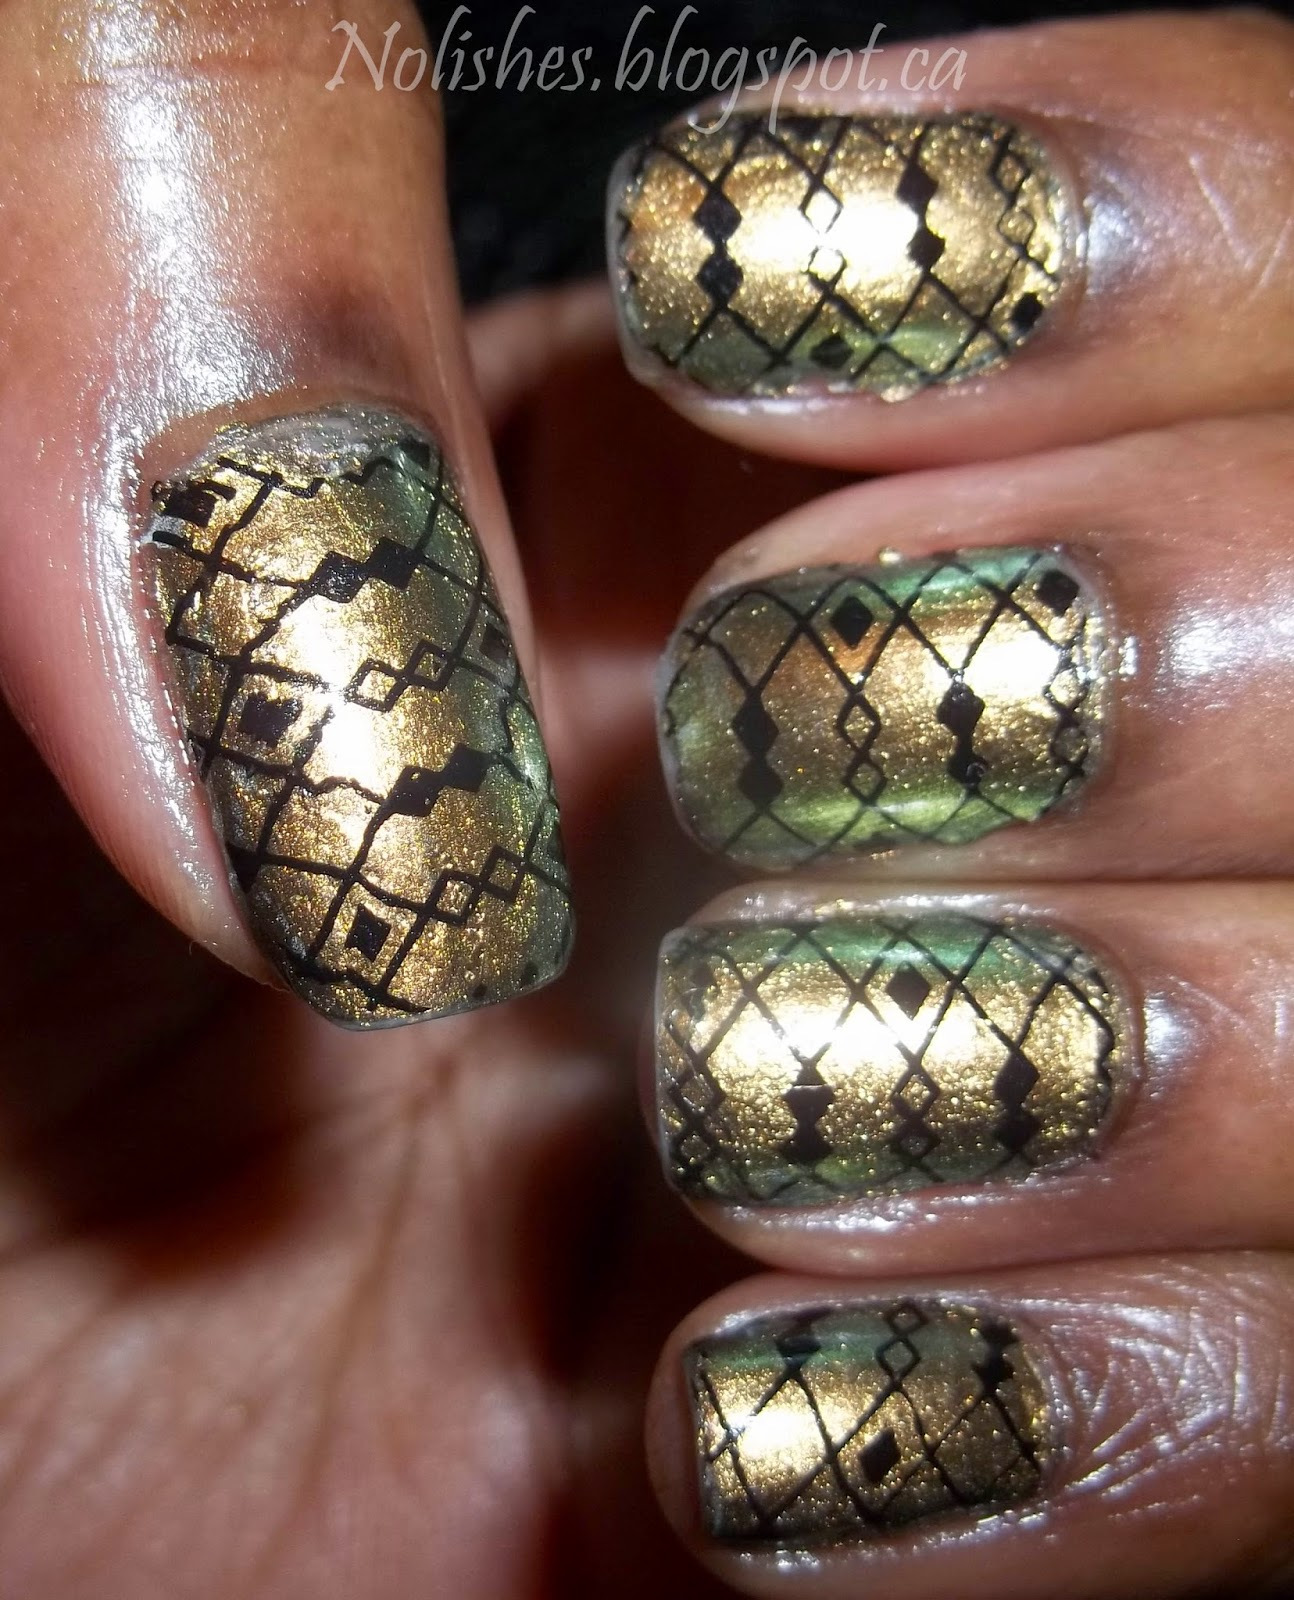 nail stamping manicure using OPI 'Just Spotted the Lizard' a bronze and green duochrome nail polish as the base colour, and stamped with a diamond and line print in black